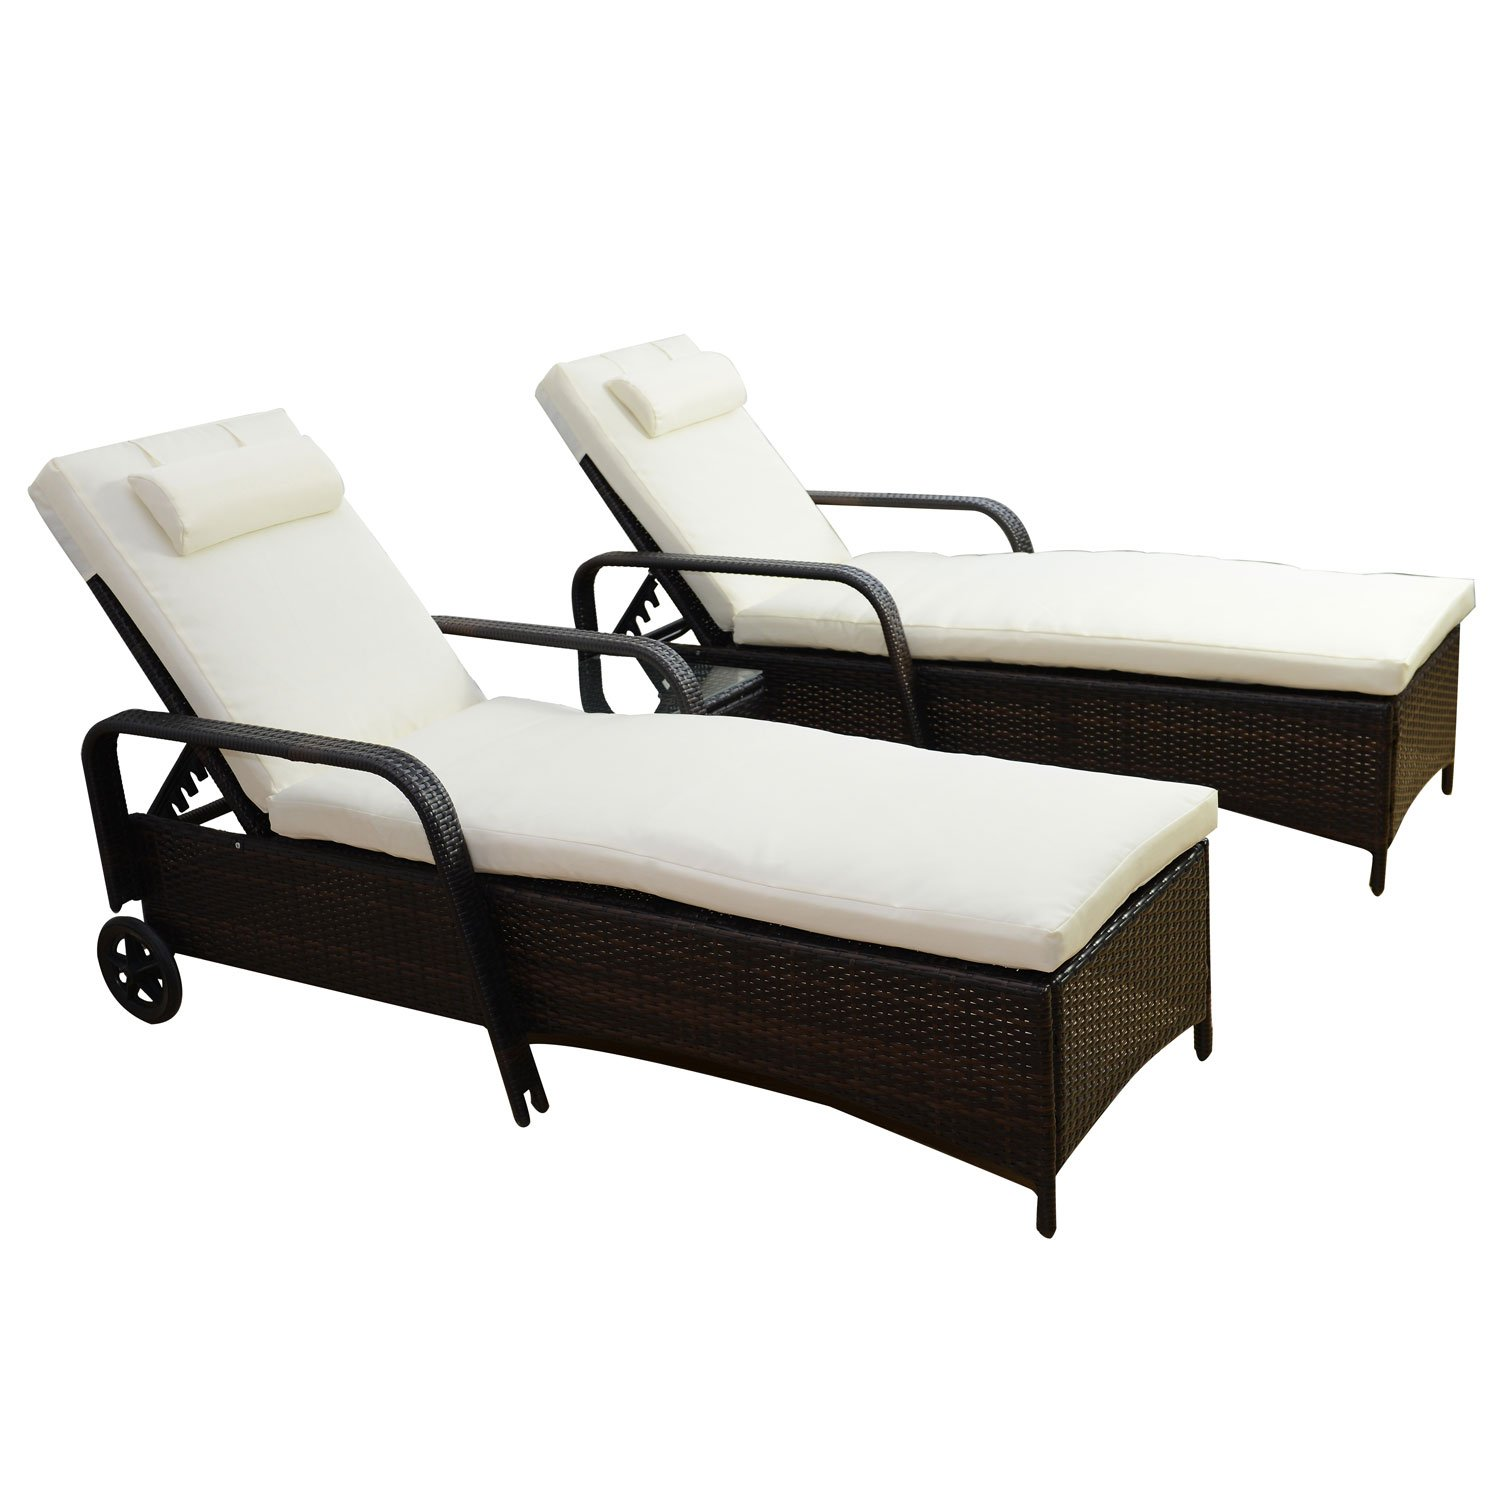 Outsunny Garden Rattan Furniture 3 PC Sun Lounger Recliner Bed Chair Set with Side Table Patio Outdoor Wicker Adjustable head height FIRE RESISTANT Sponge ...  sc 1 st  Amazon UK & Outsunny Garden Rattan Furniture 3 PC Sun Lounger Recliner Bed ... islam-shia.org